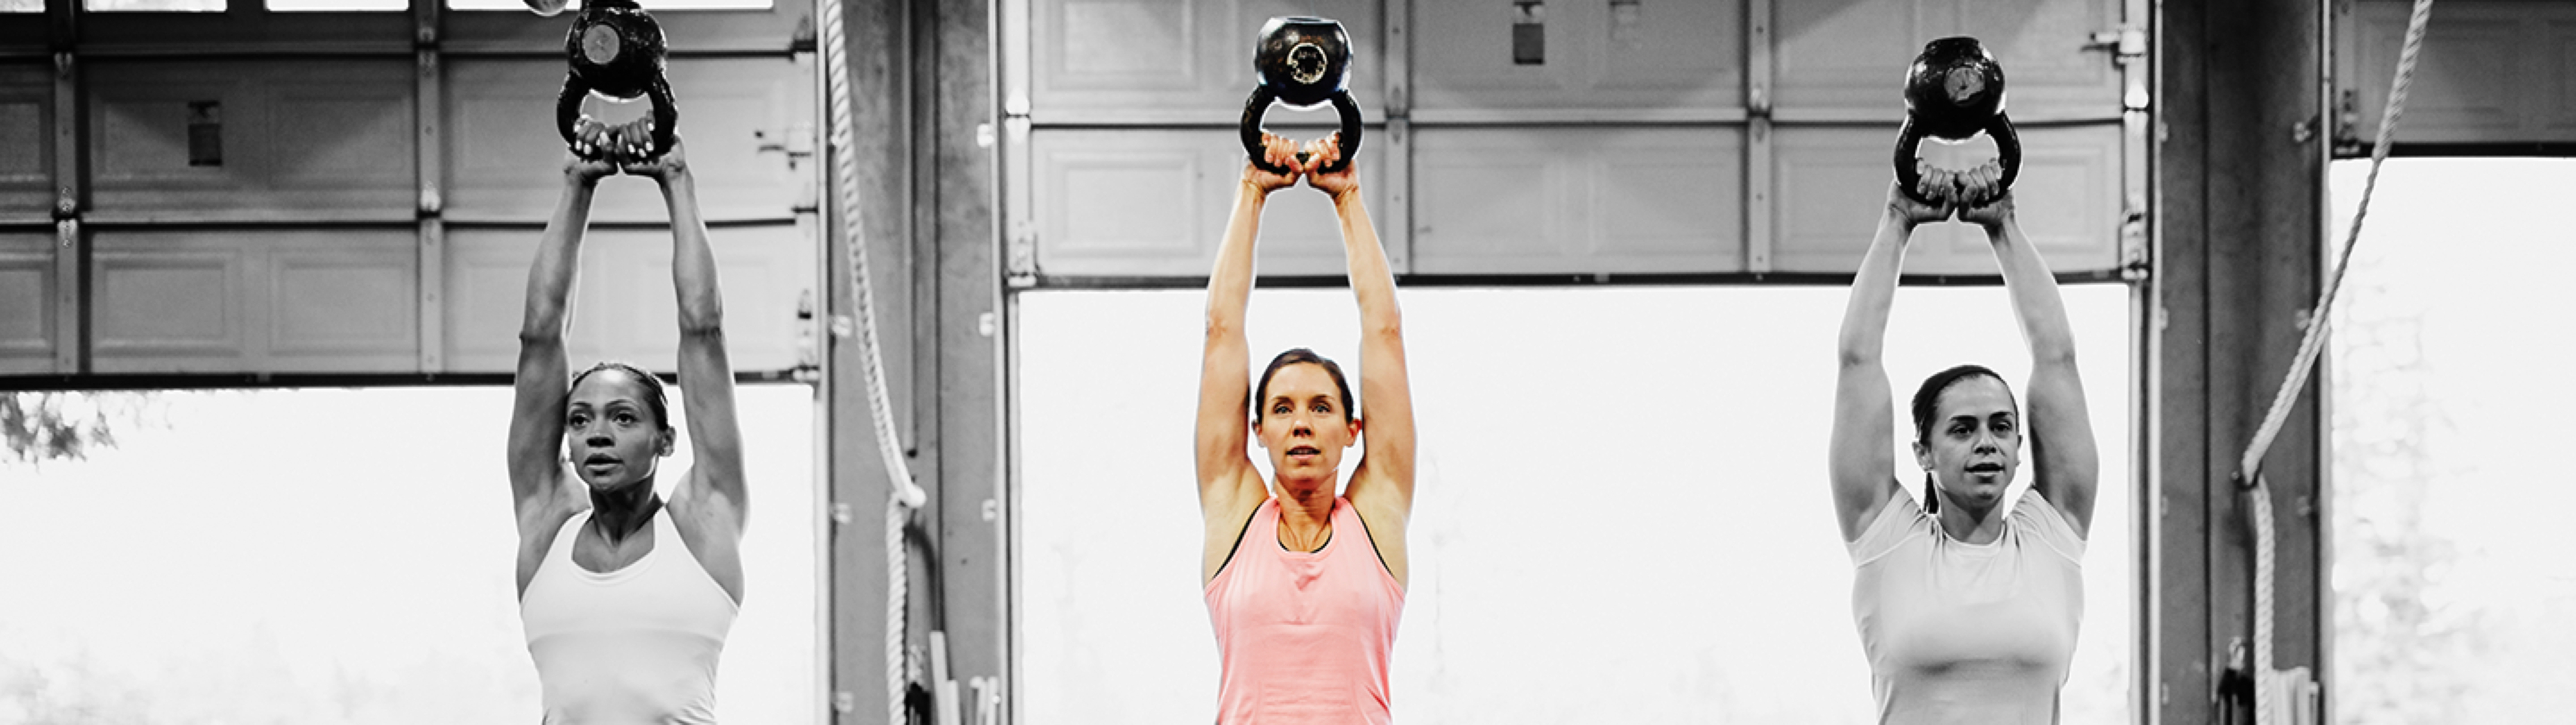 Three women working out with kettle bells